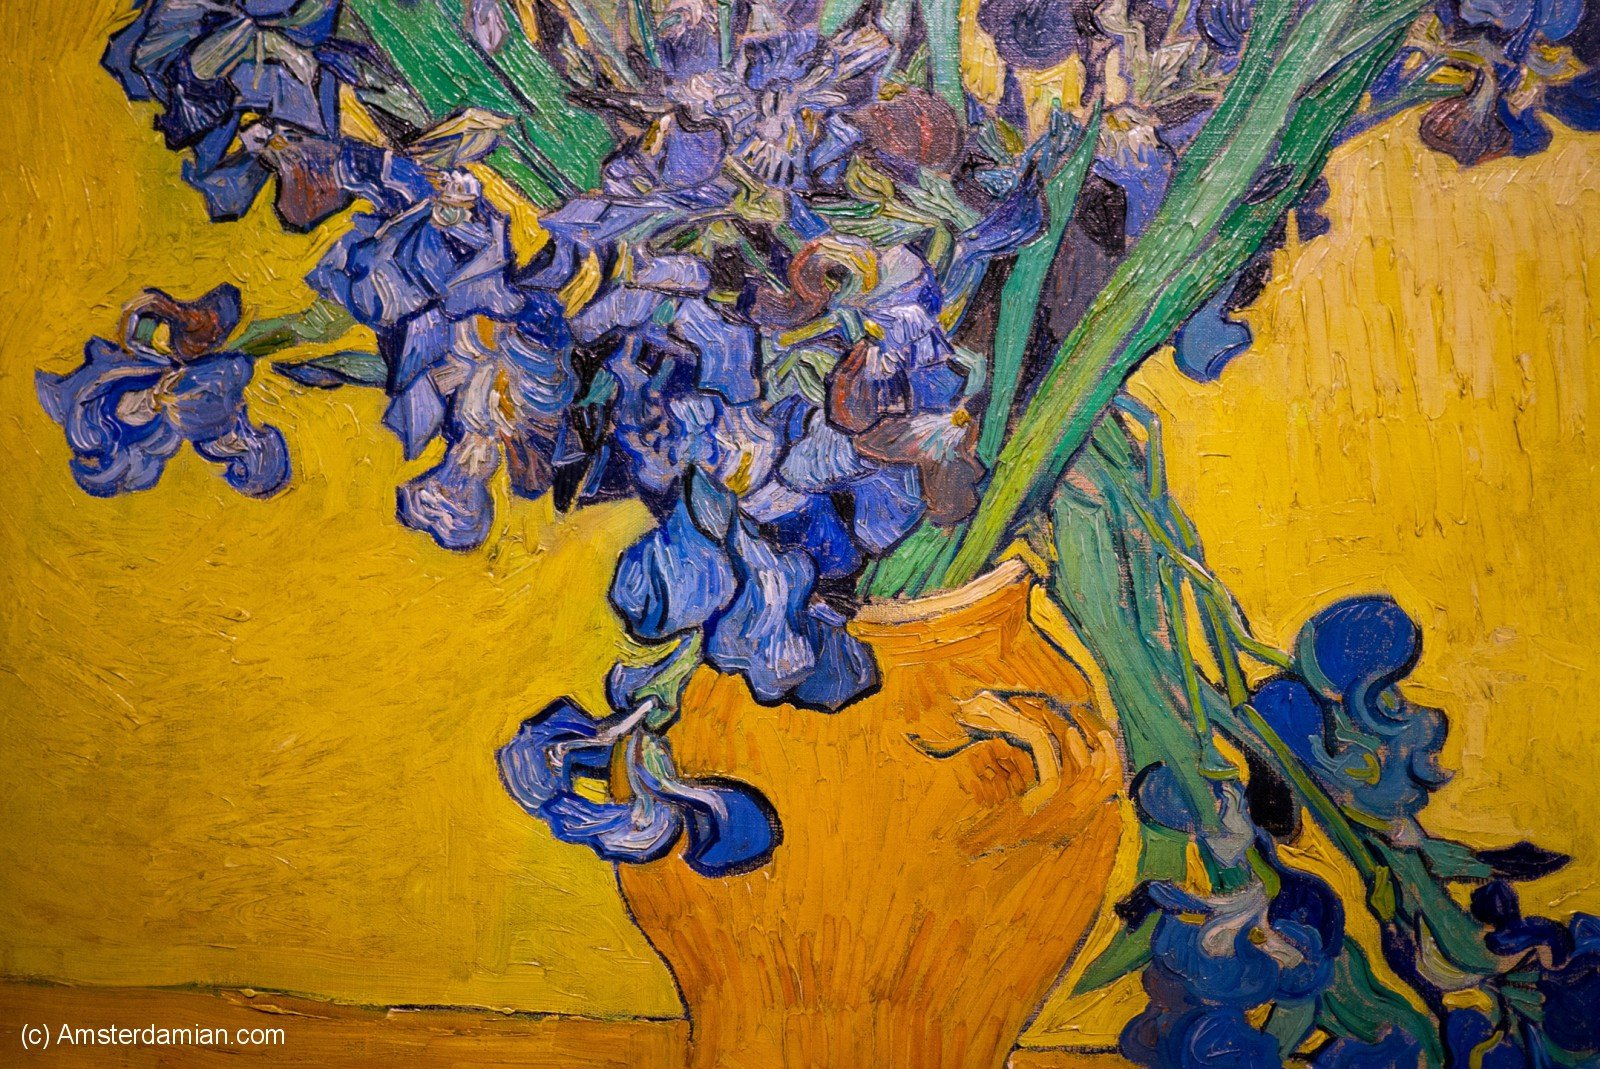 Van gogh museum amsterdamian vase with irises reviewsmspy